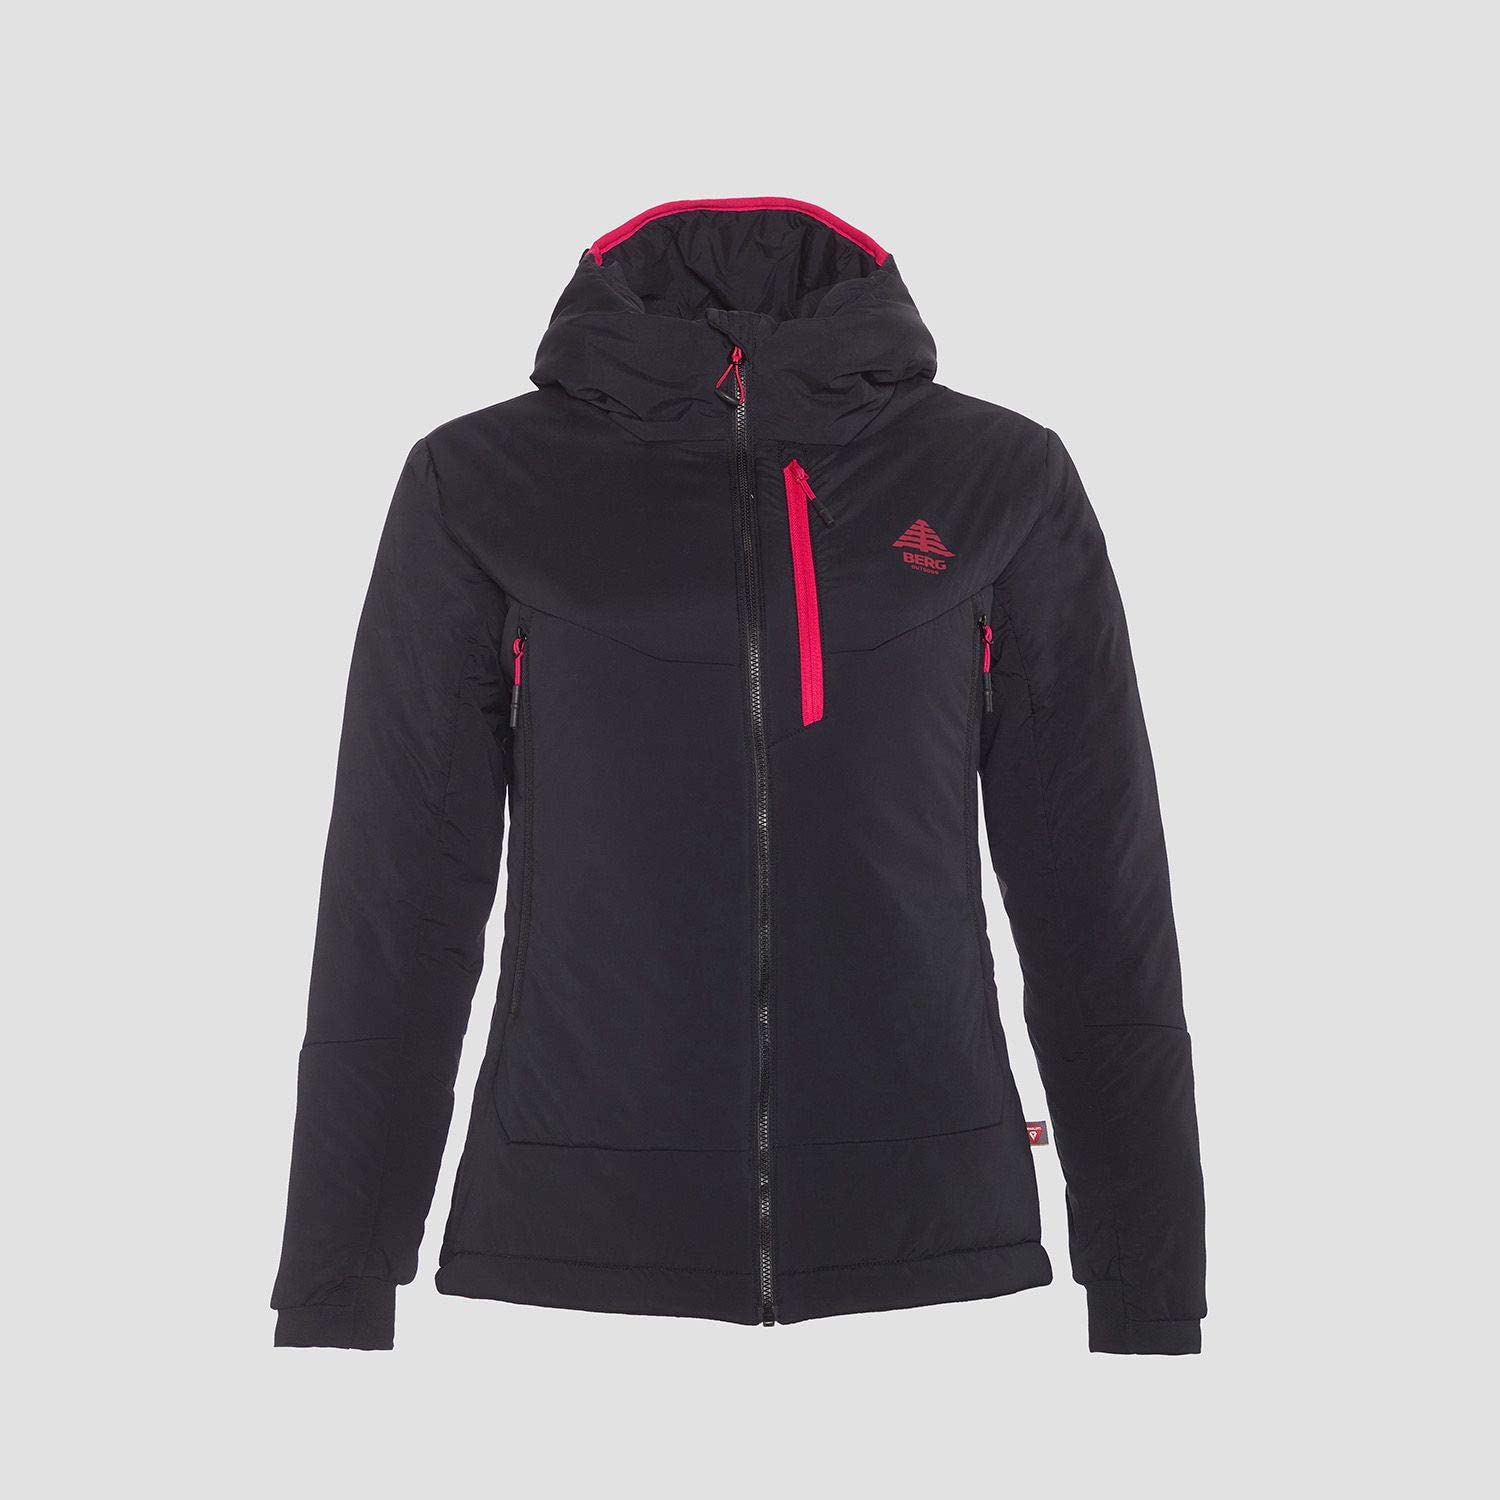 Giacca Isolante Donna Berg Outdoor Caramulo